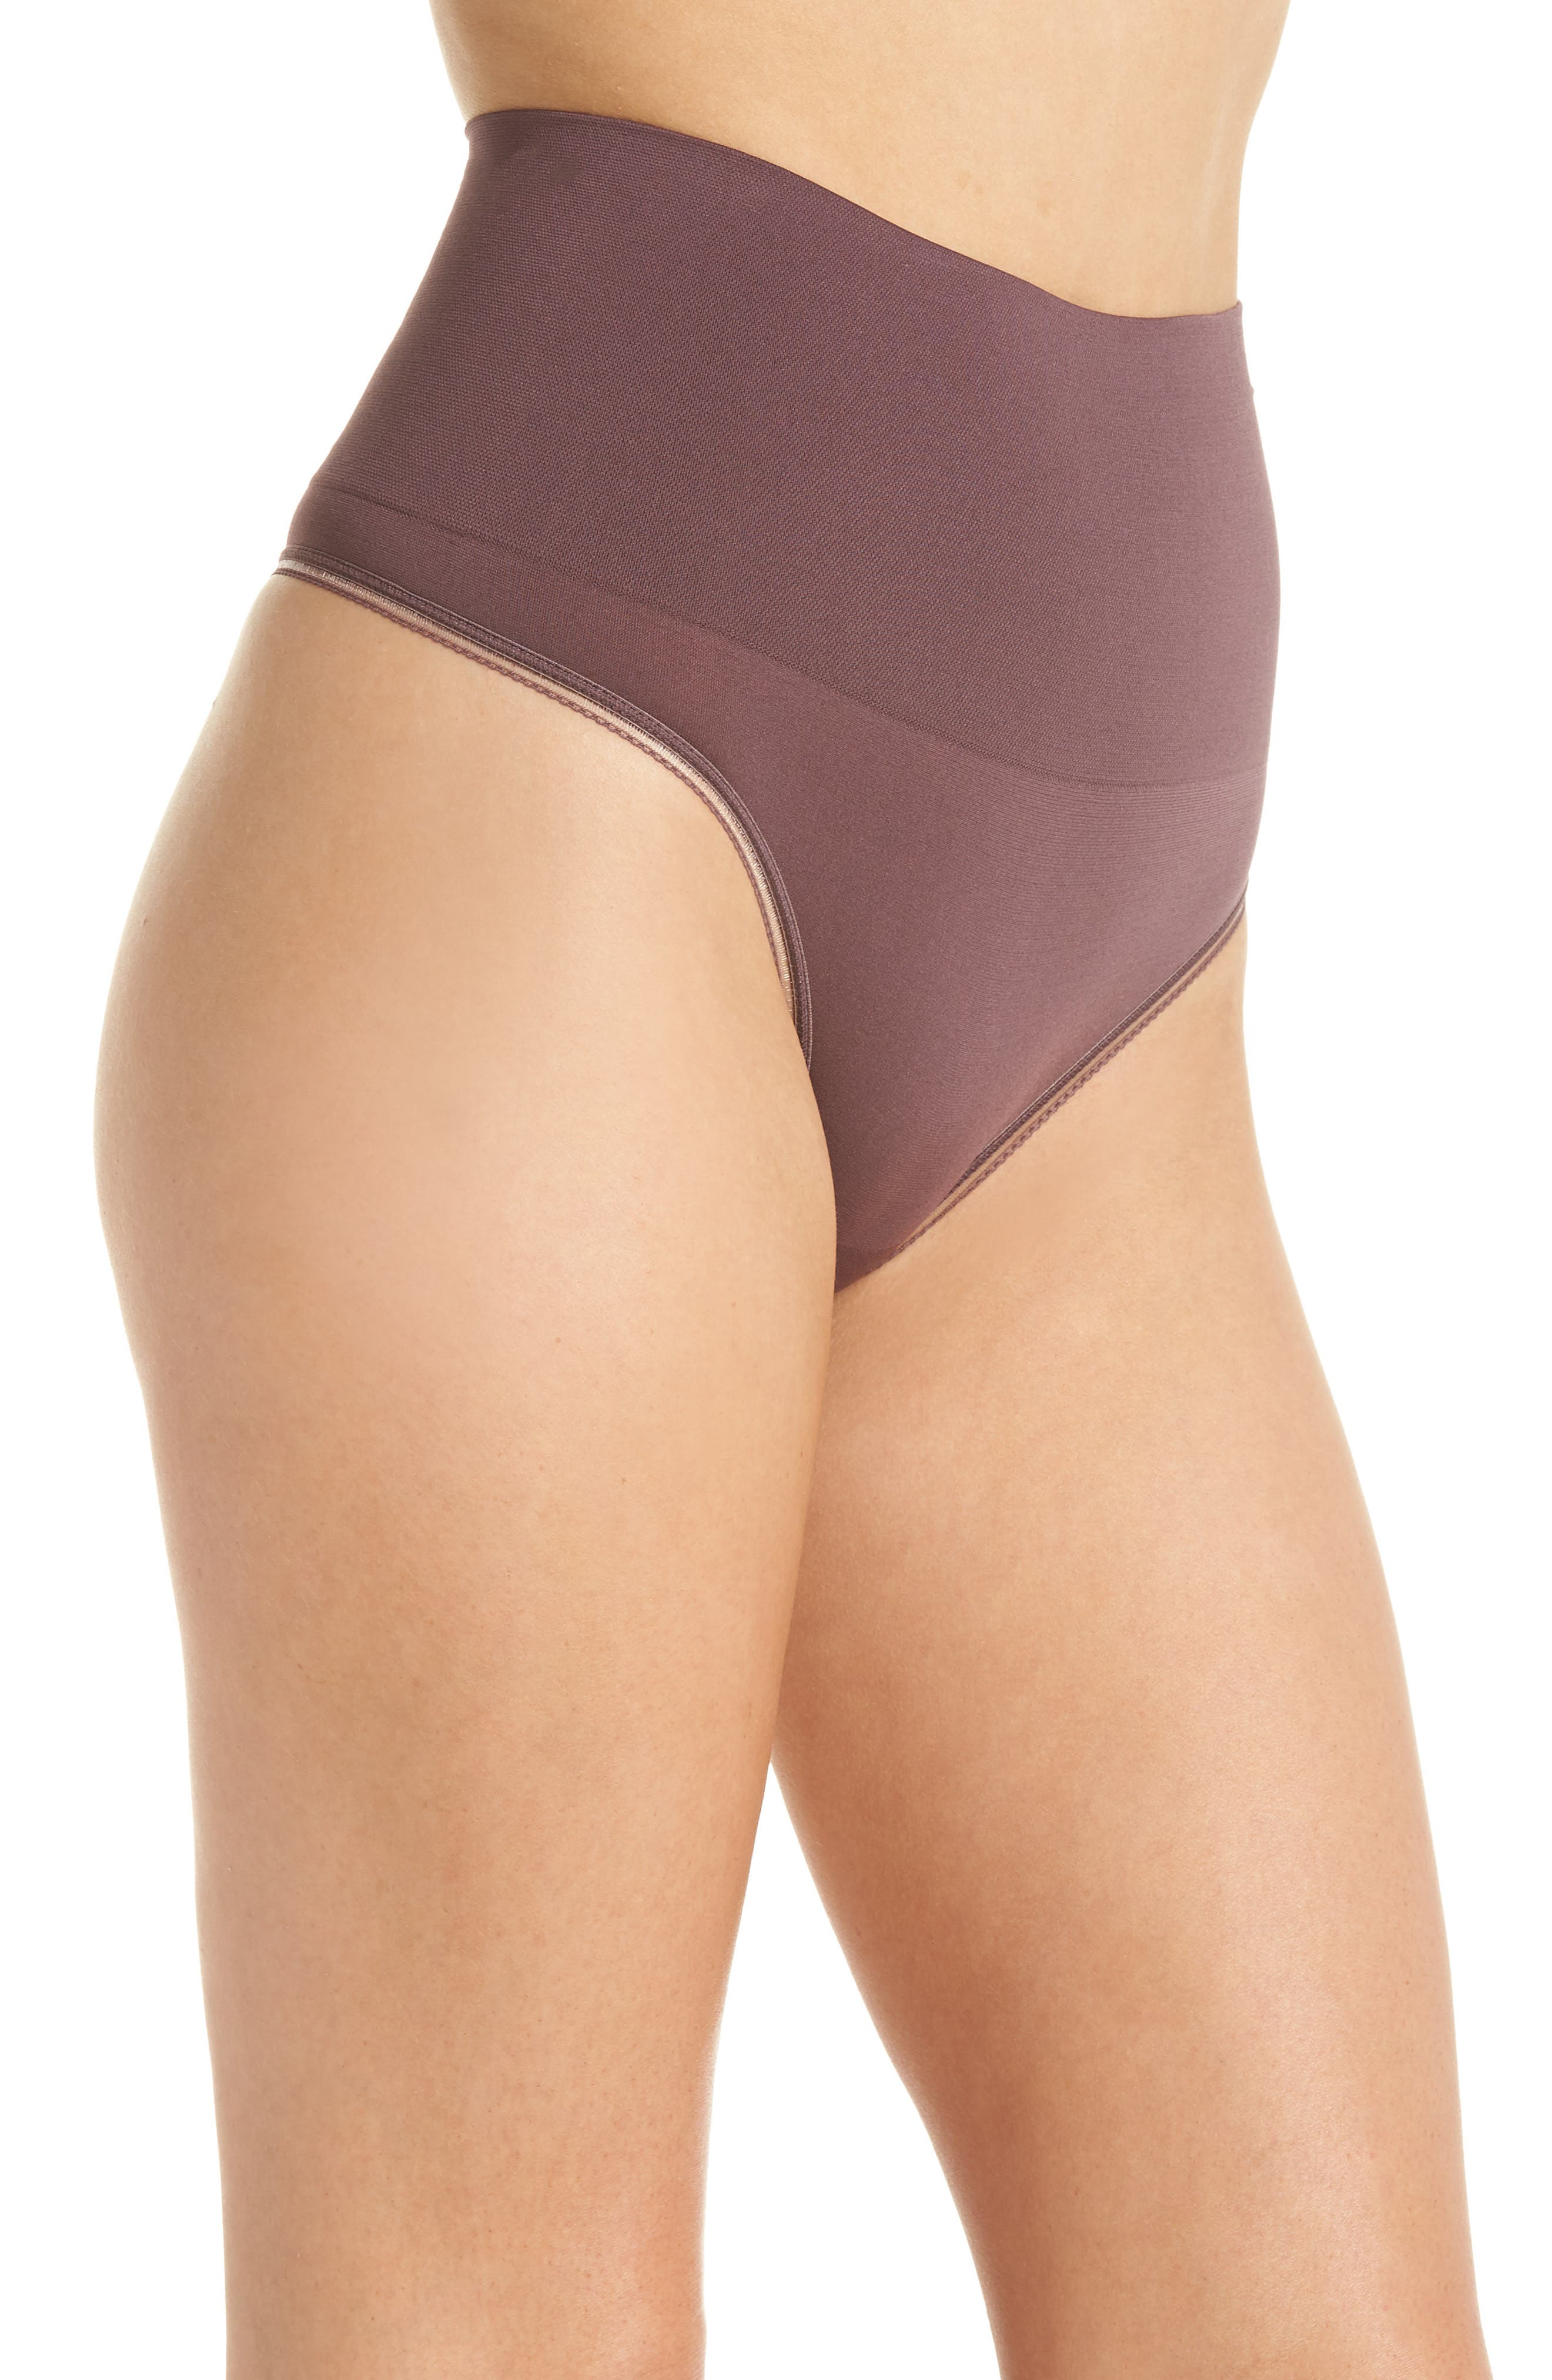 Ultralight Seamless Shaping Thong,                             Alternate thumbnail 3, color,                             HUCKLEBERRY